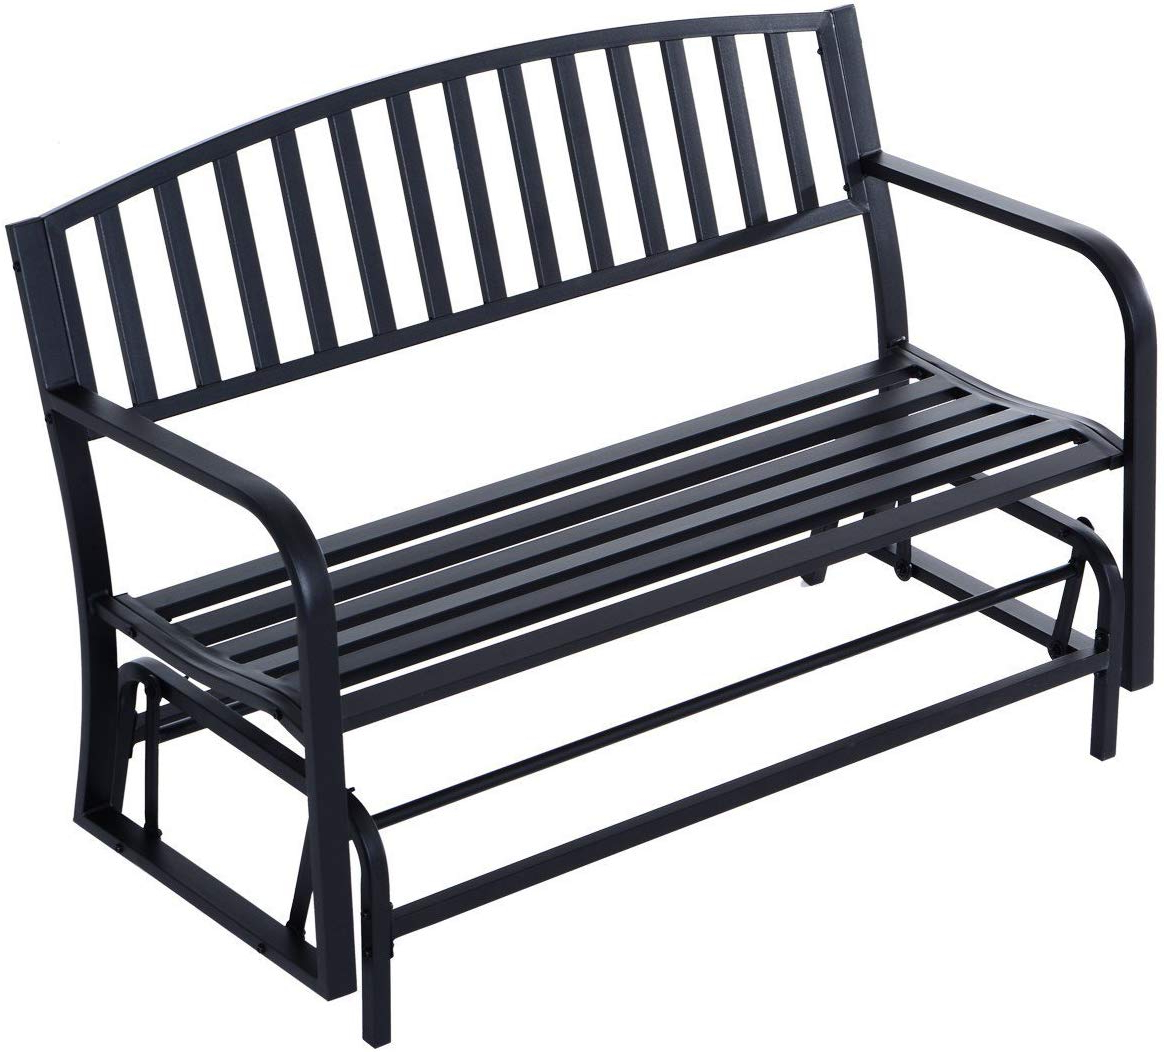 "Most Current Amazon : Outdoor Bench 50"" Steel Patio Swing Glider Throughout Black Steel Patio Swing Glider Benches Powder Coated (View 16 of 30)"